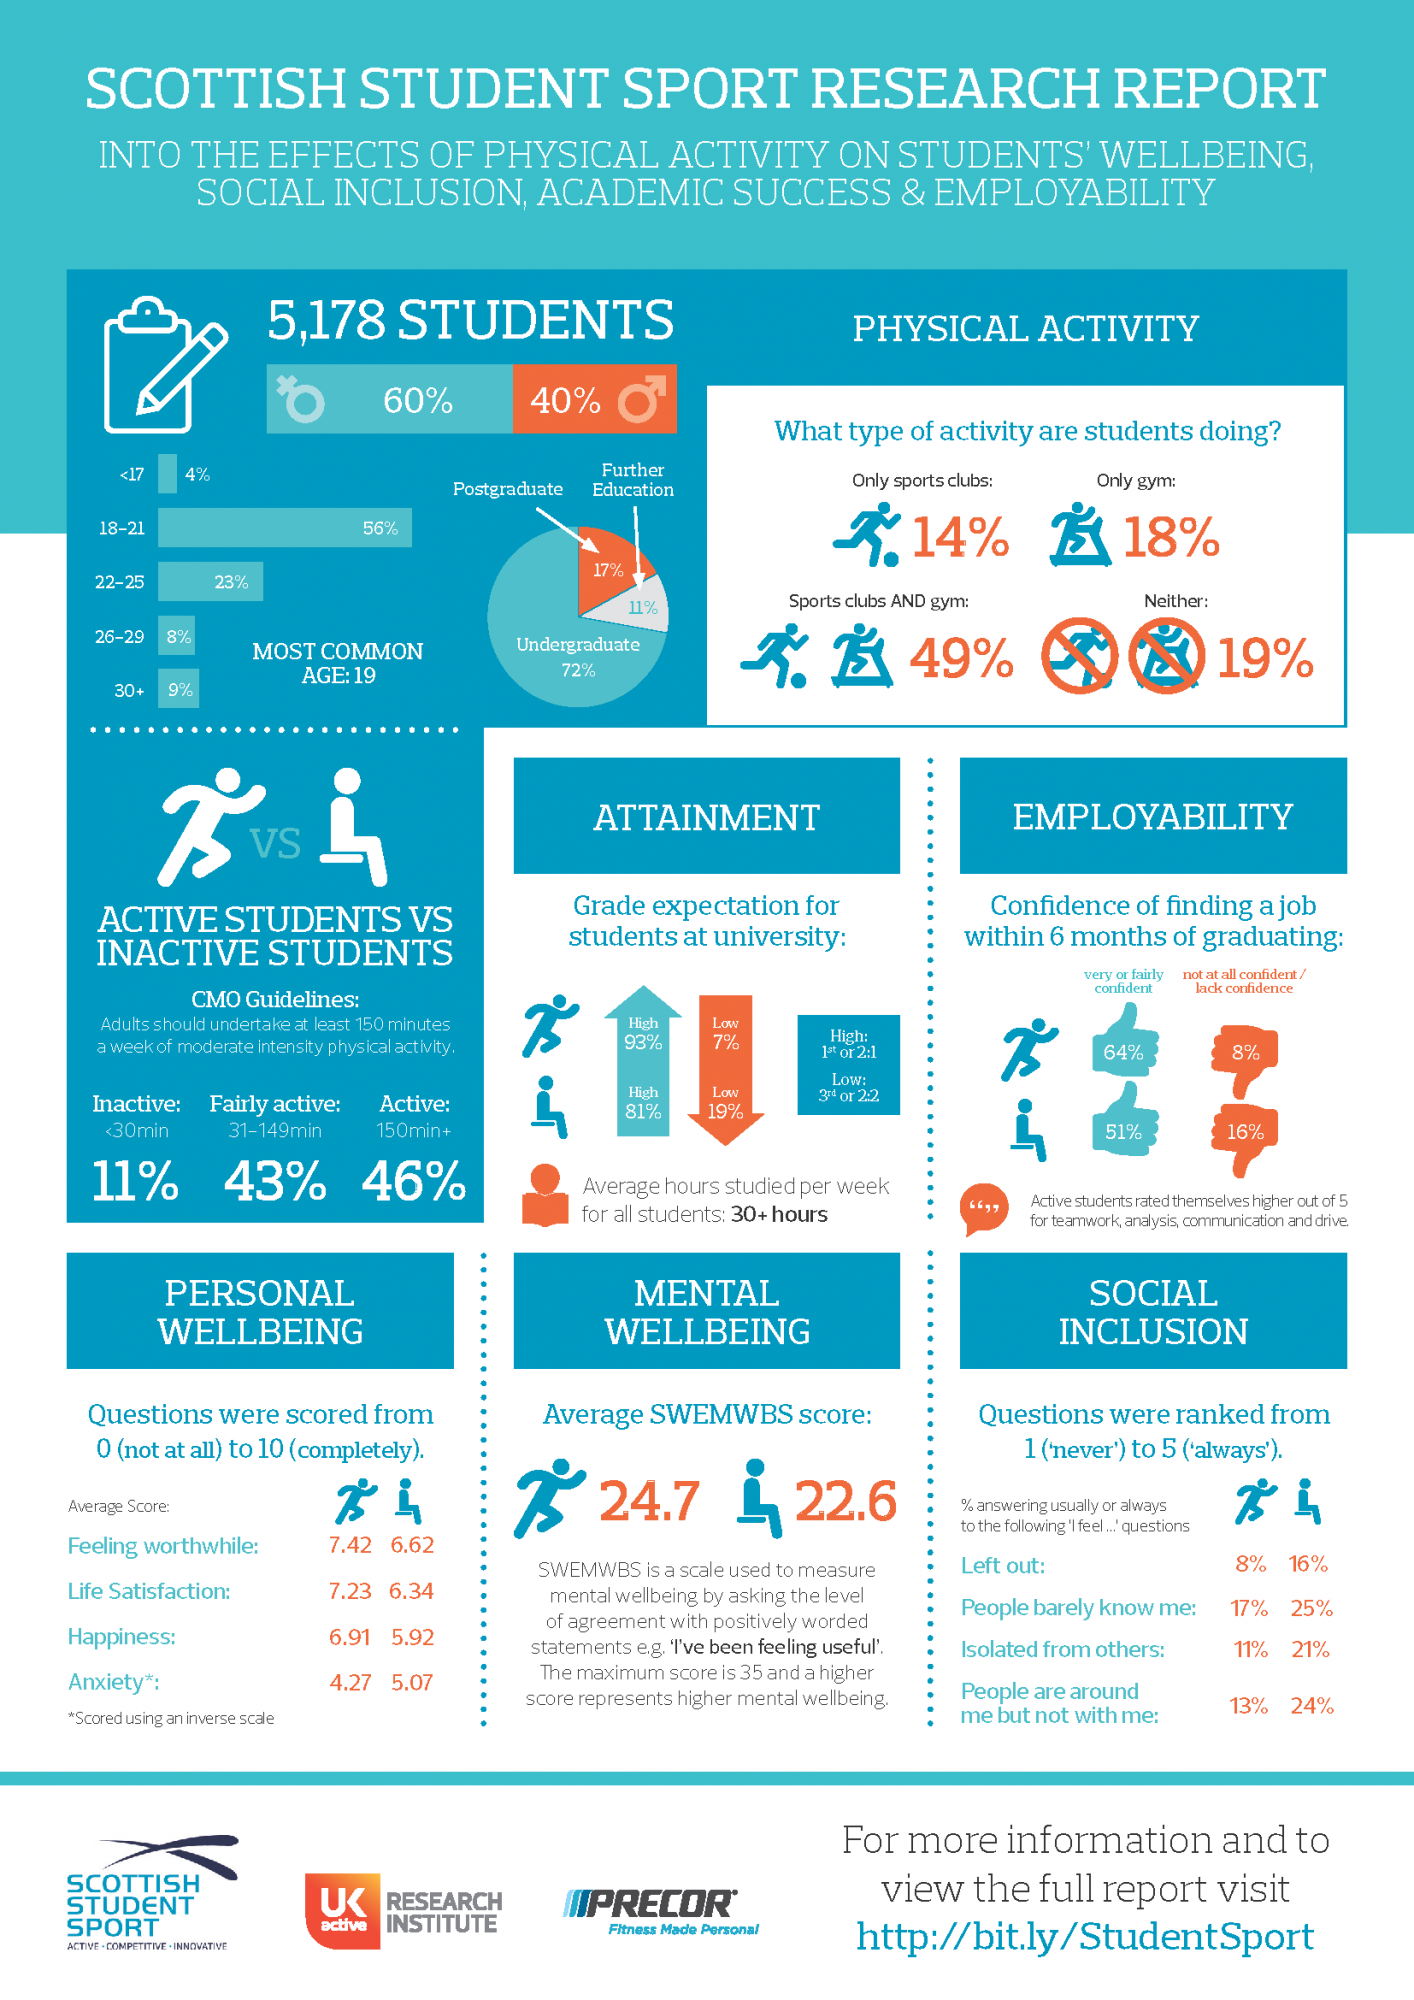 SCOTTISH STUDENT SPORT RESEARCH REPORT INFOGRAPHIC ...